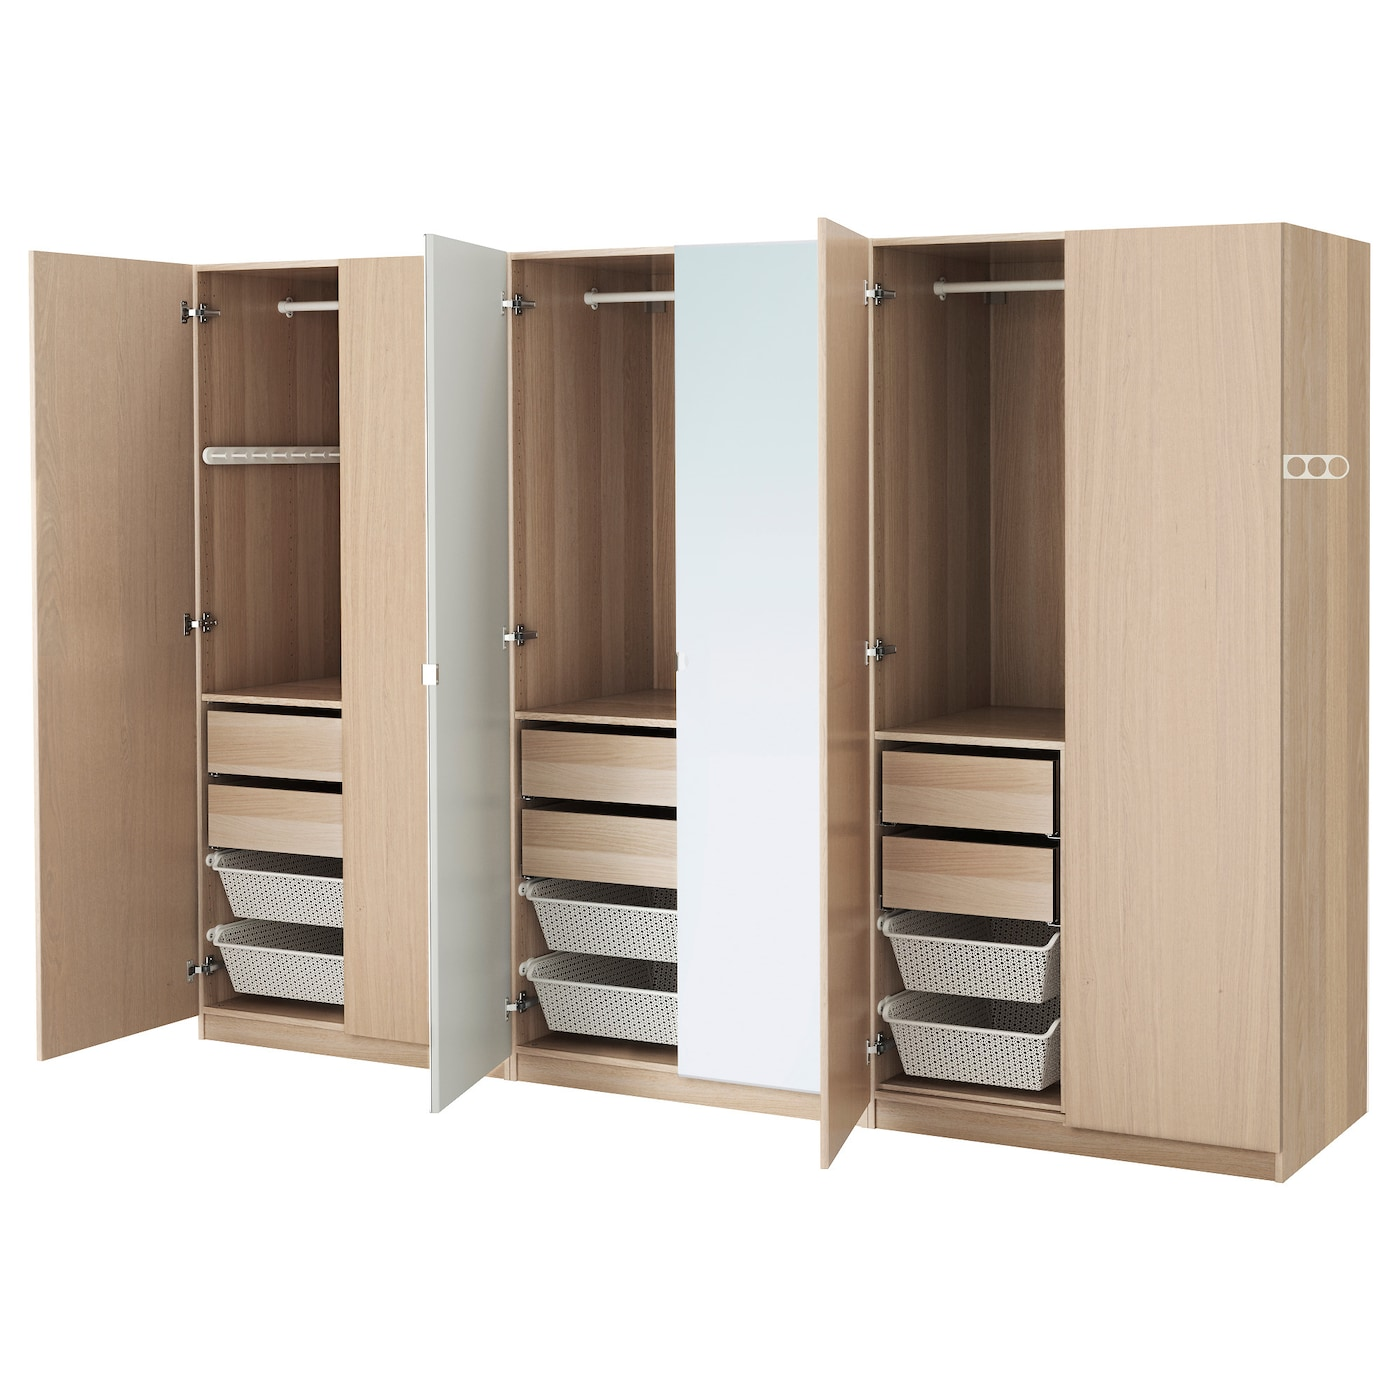 pax wardrobe white stained oak effect nexus vikedal 300 x. Black Bedroom Furniture Sets. Home Design Ideas